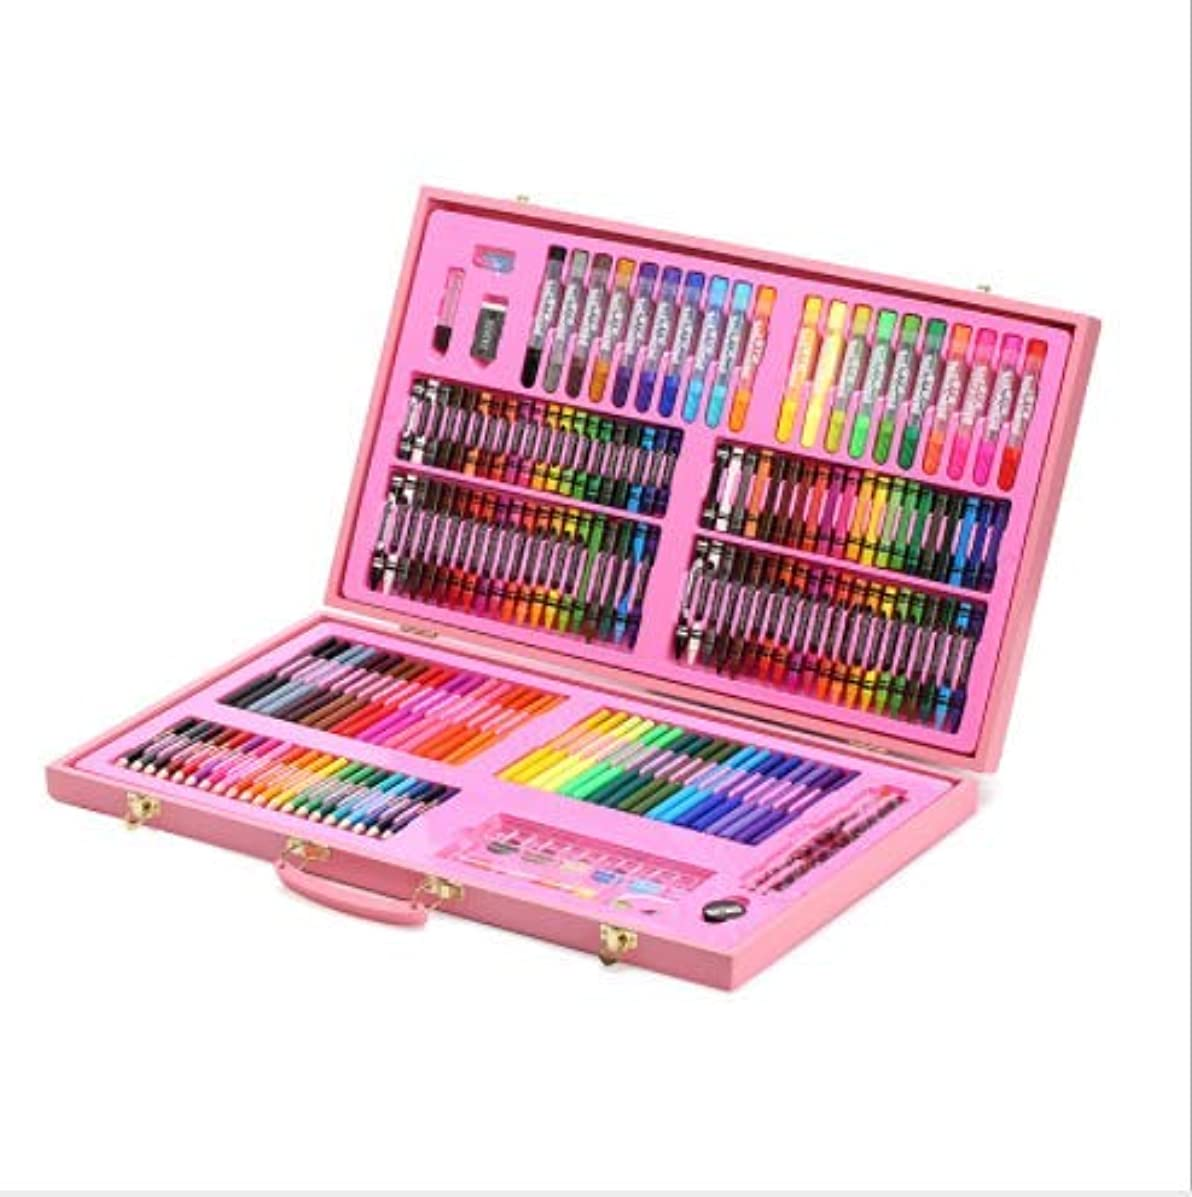 WENZHEN Children's Brush Sets Birthday Gifts Children's Day Children's Day School Prizes Painting Sets Gift Boxes Painting Watercolor Pencils